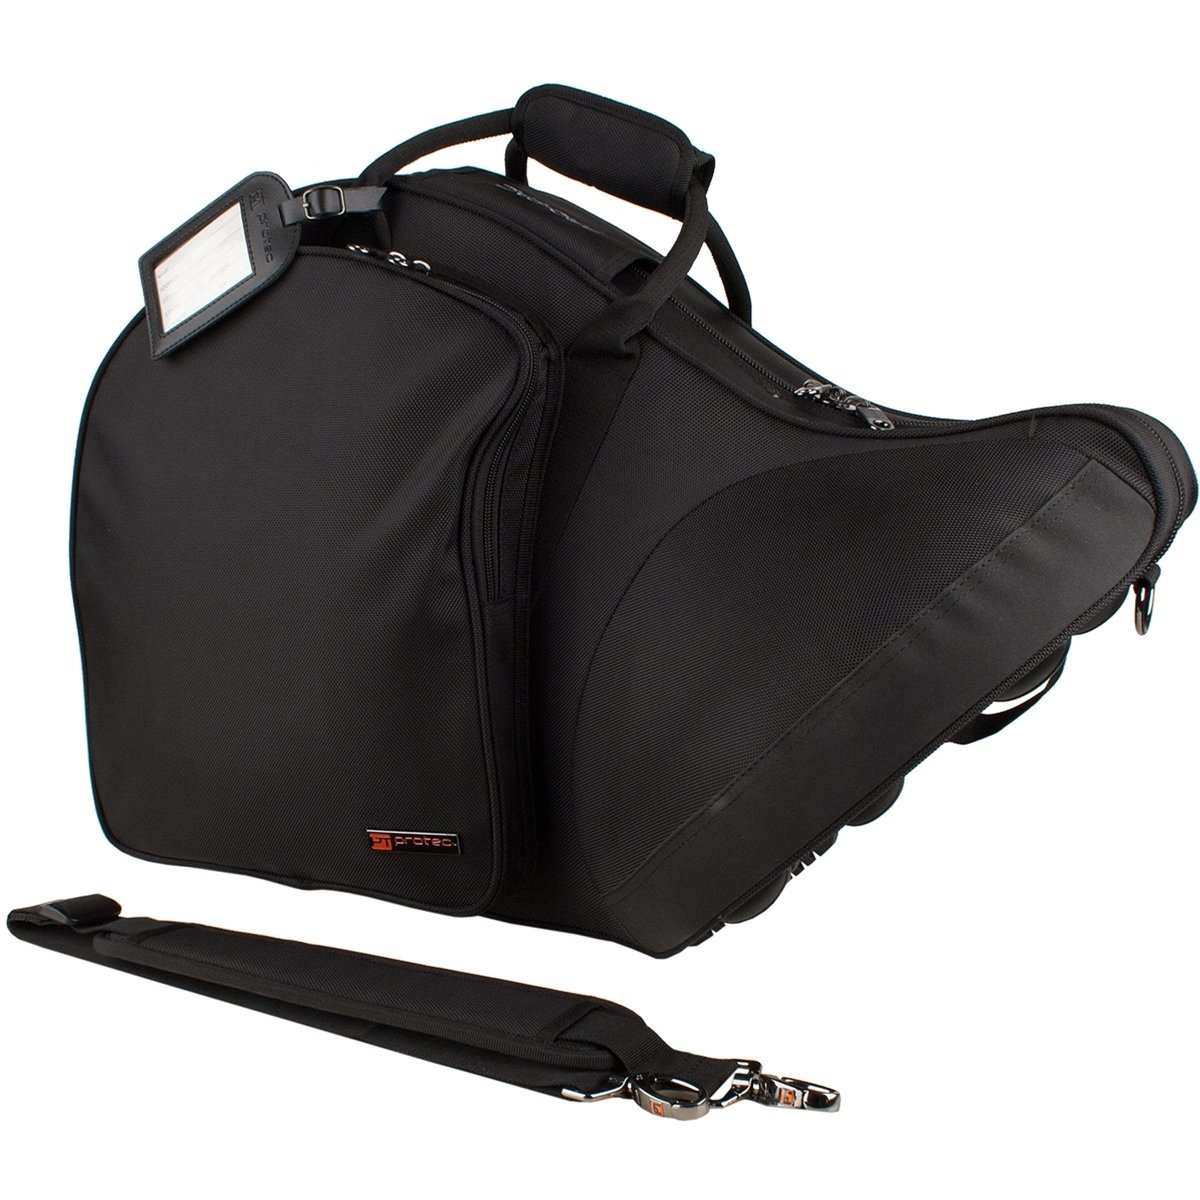 Protec Protec Pro Pac French Horn Contoured Case